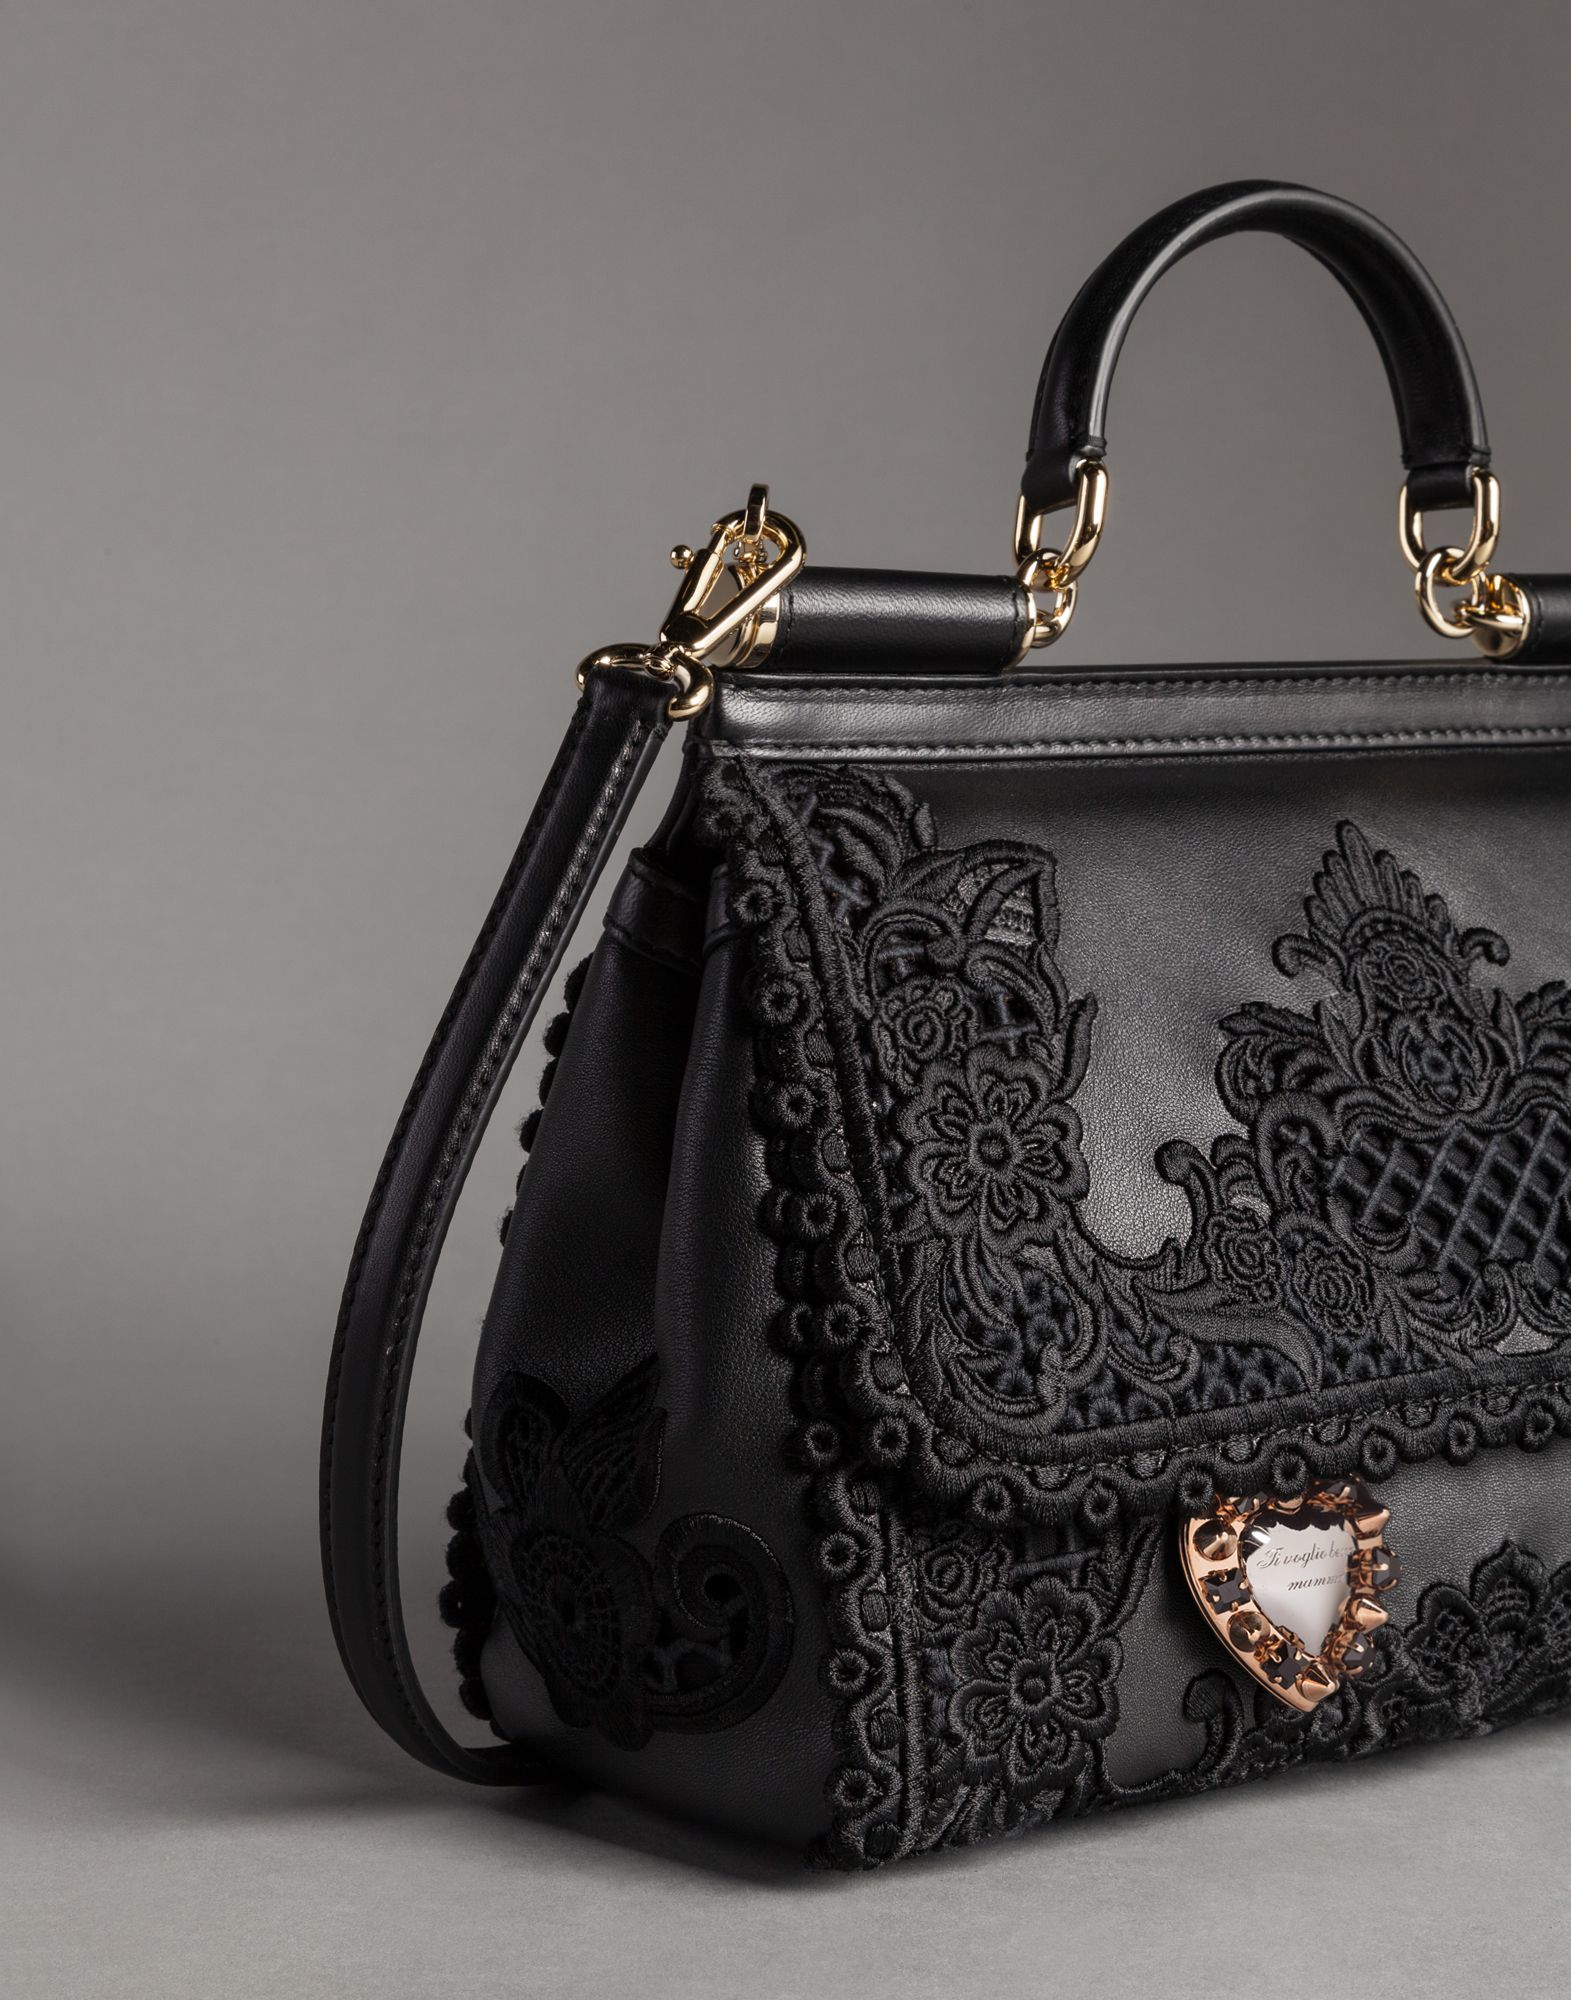 a9a7d9e851 Lyst - Dolce   Gabbana Macramé Lace On Napa Leather Mamma Bag in Black